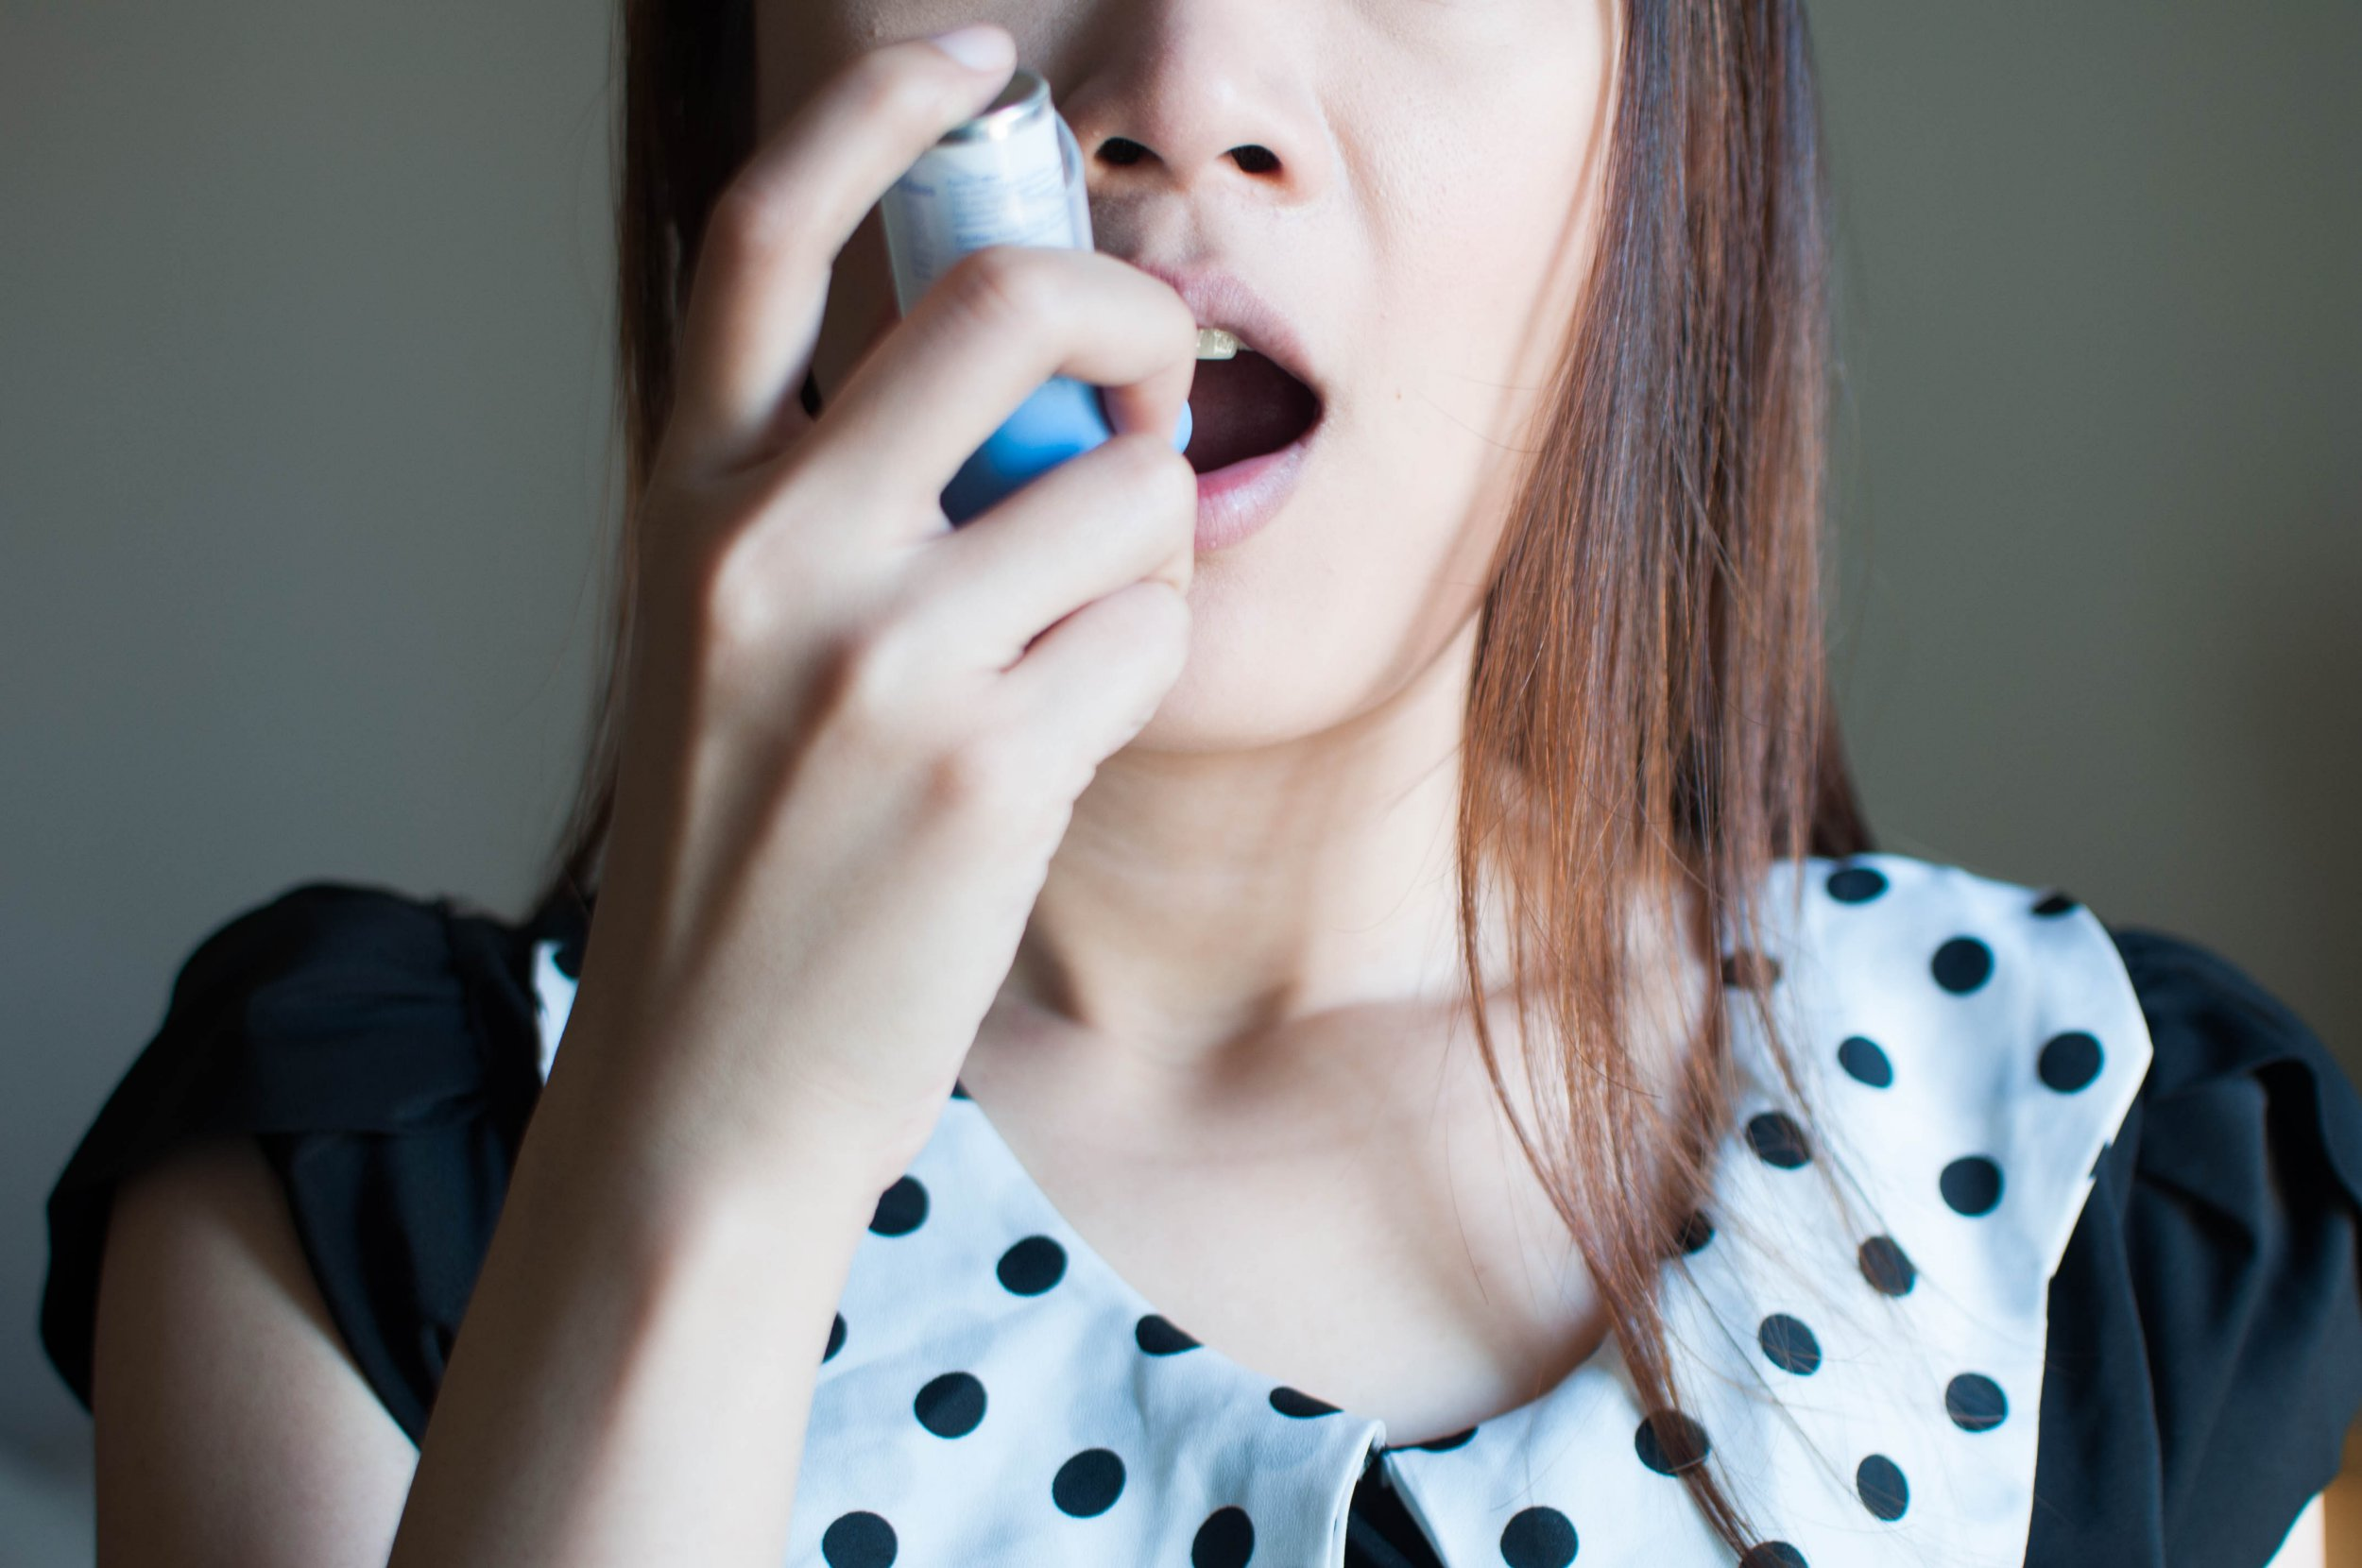 Thousands of people with asthma suffer debilitating side-effects of 'toxic' drugs, charity says